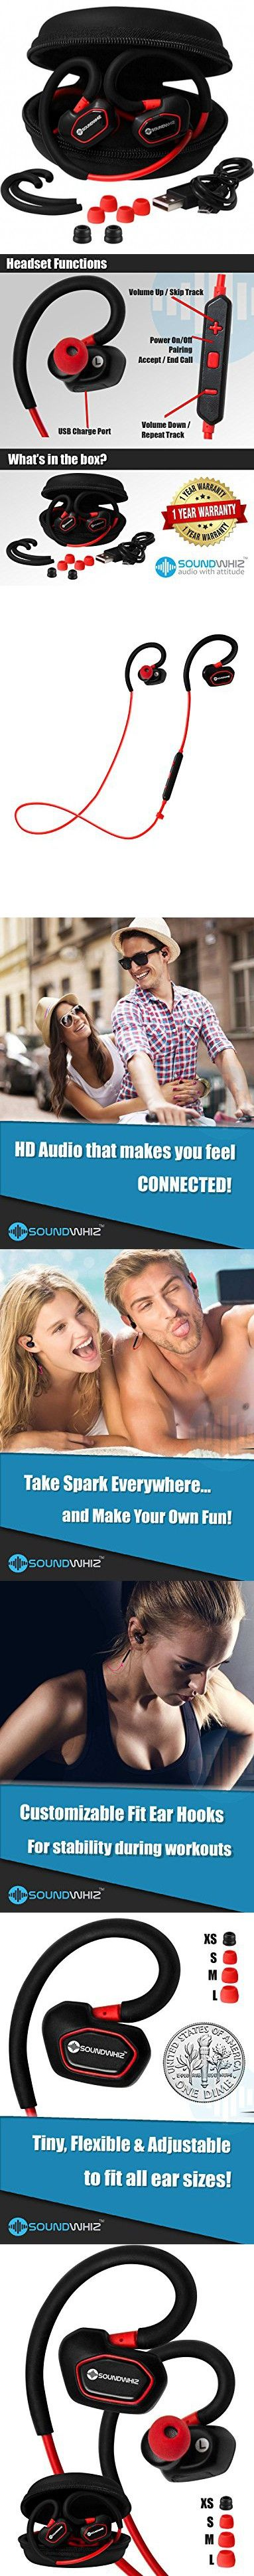 Bluetooth Earbuds. SoundWhiz Spark Best Wireless Earbuds. Stable Fit For Running, Cycling, Gym, Yoga, Fitness. Wireless Headset with Mic. Red